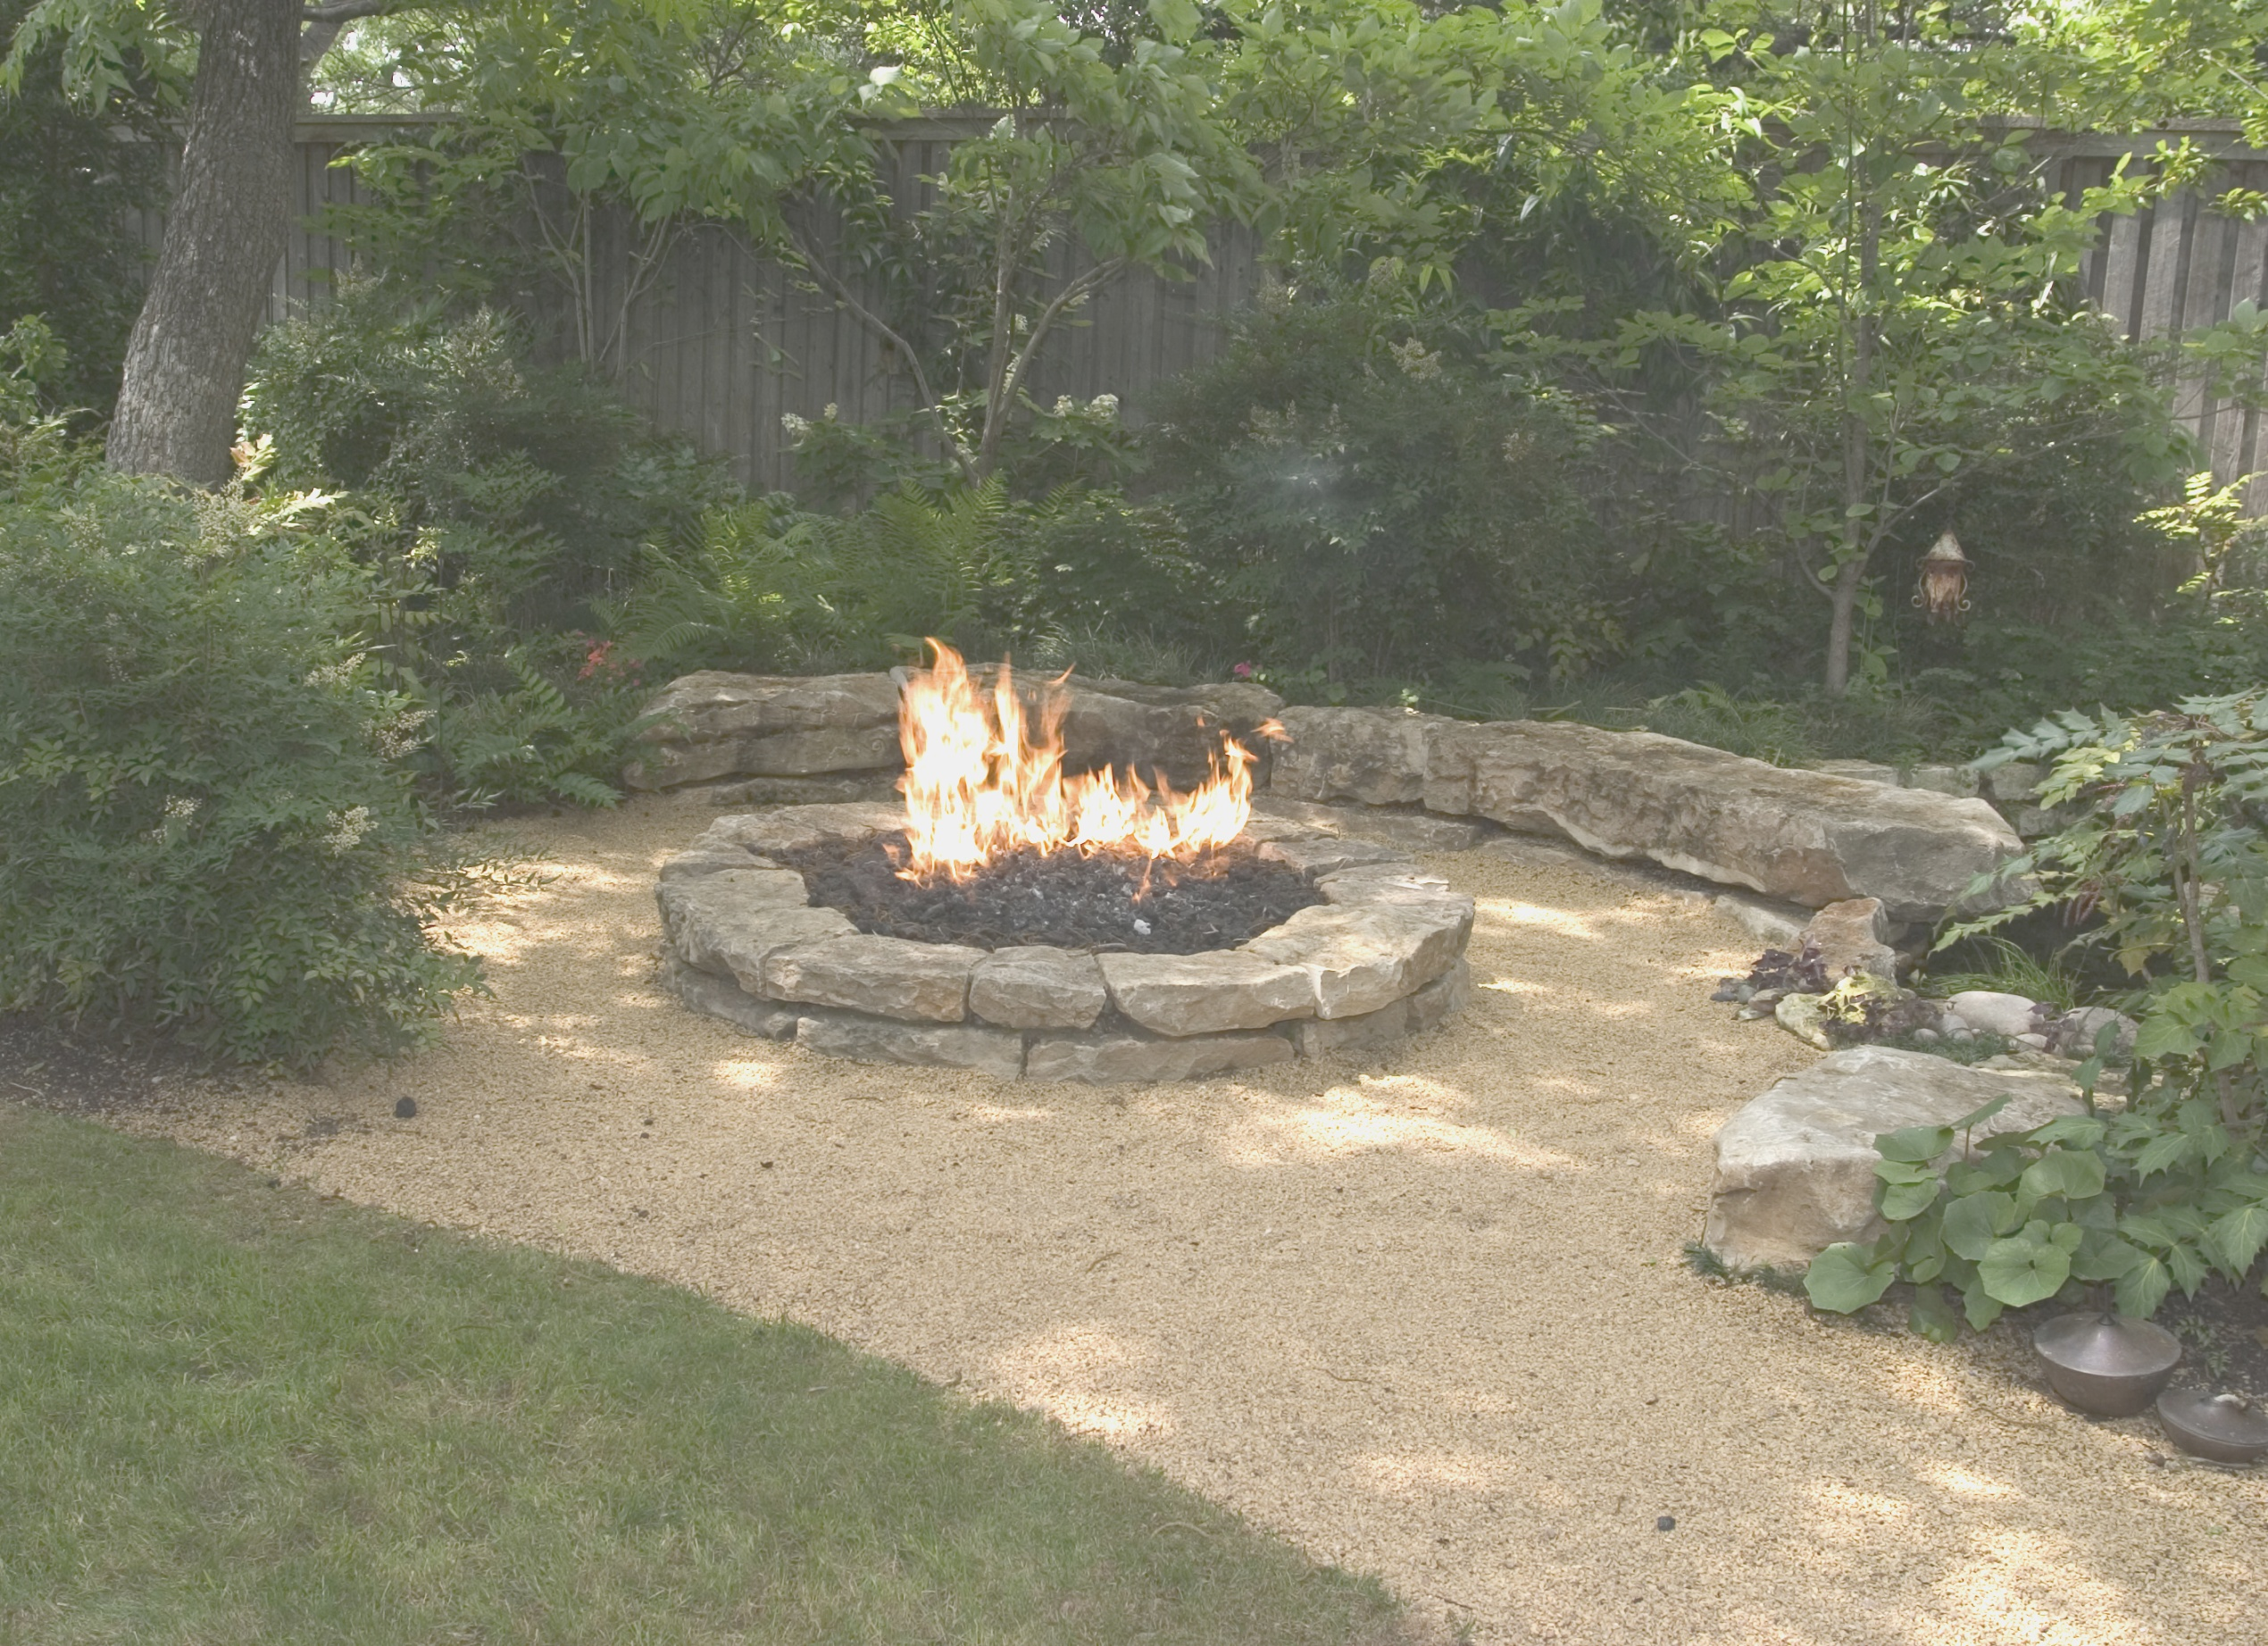 fire pit designs | best backyard fire pit designs » Design and Ideas | fire pit designs